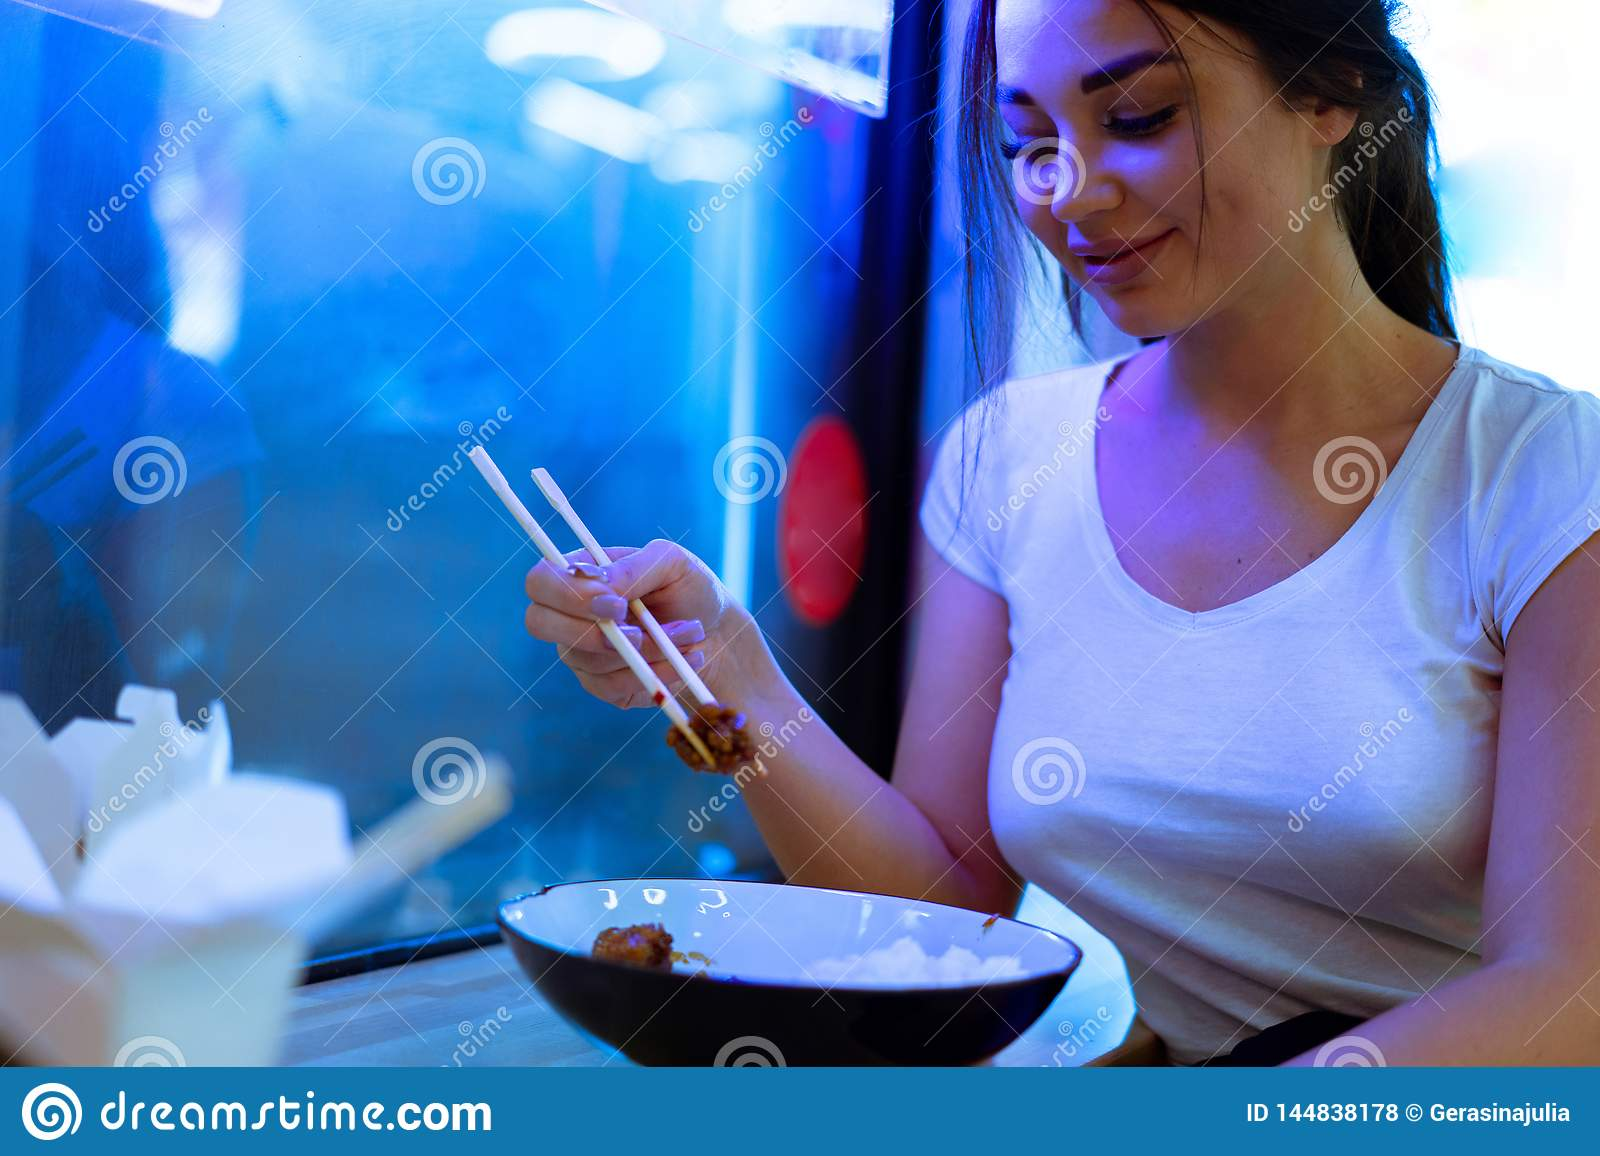 Young attractive woman eating asian food with chopsticks at cafe or restaurant.